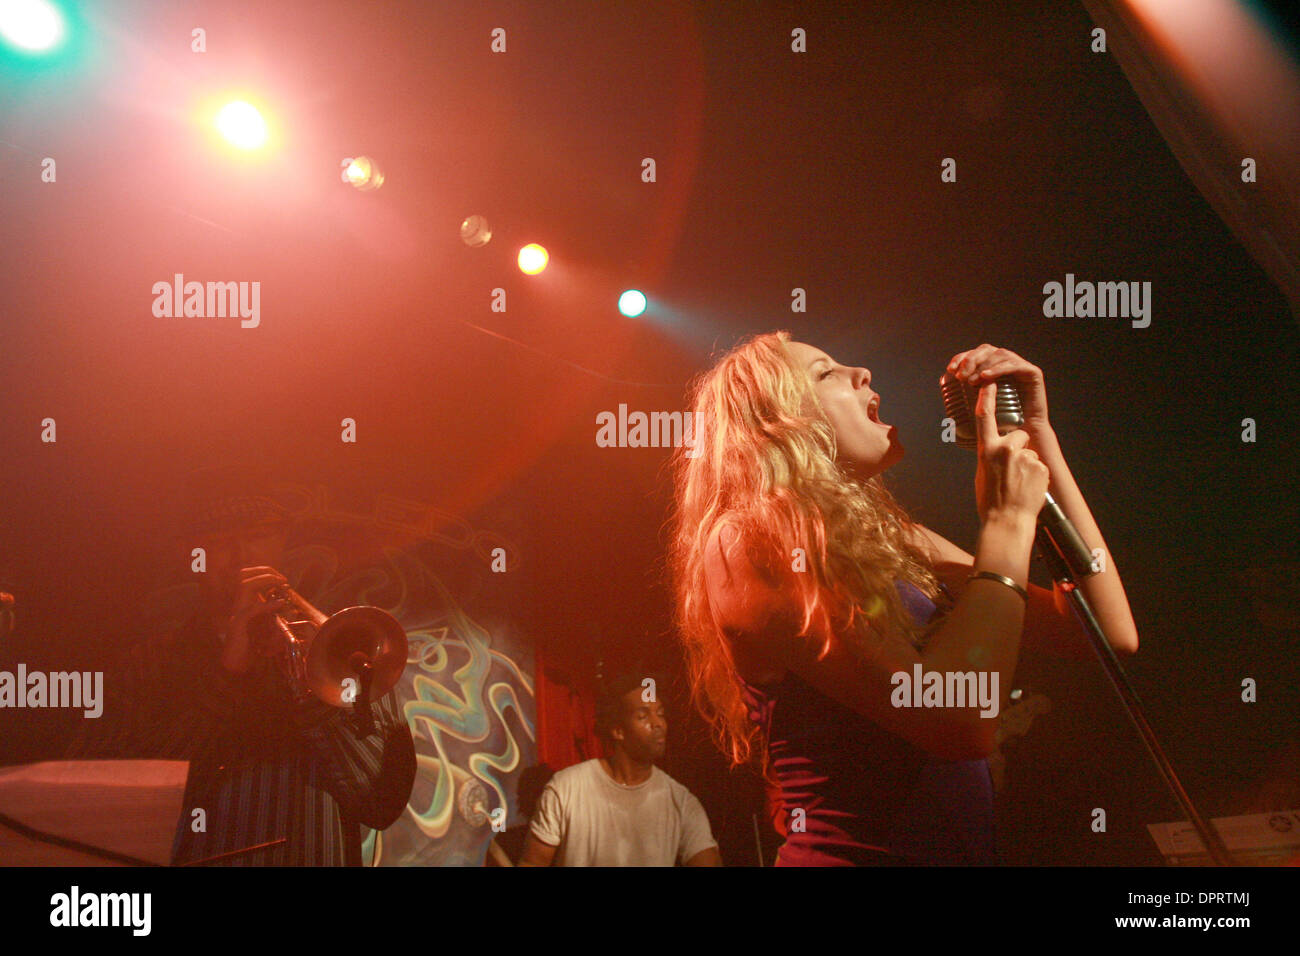 Dec 11, 2008 - Los Angeles, California , United States - Actress singer BIJOU PHILLIPS performs with the Toldeo Show band at Harvelle's in Santa Monica. (Credit Image: © Ringo Chiu/Zuma Press) - Stock Image